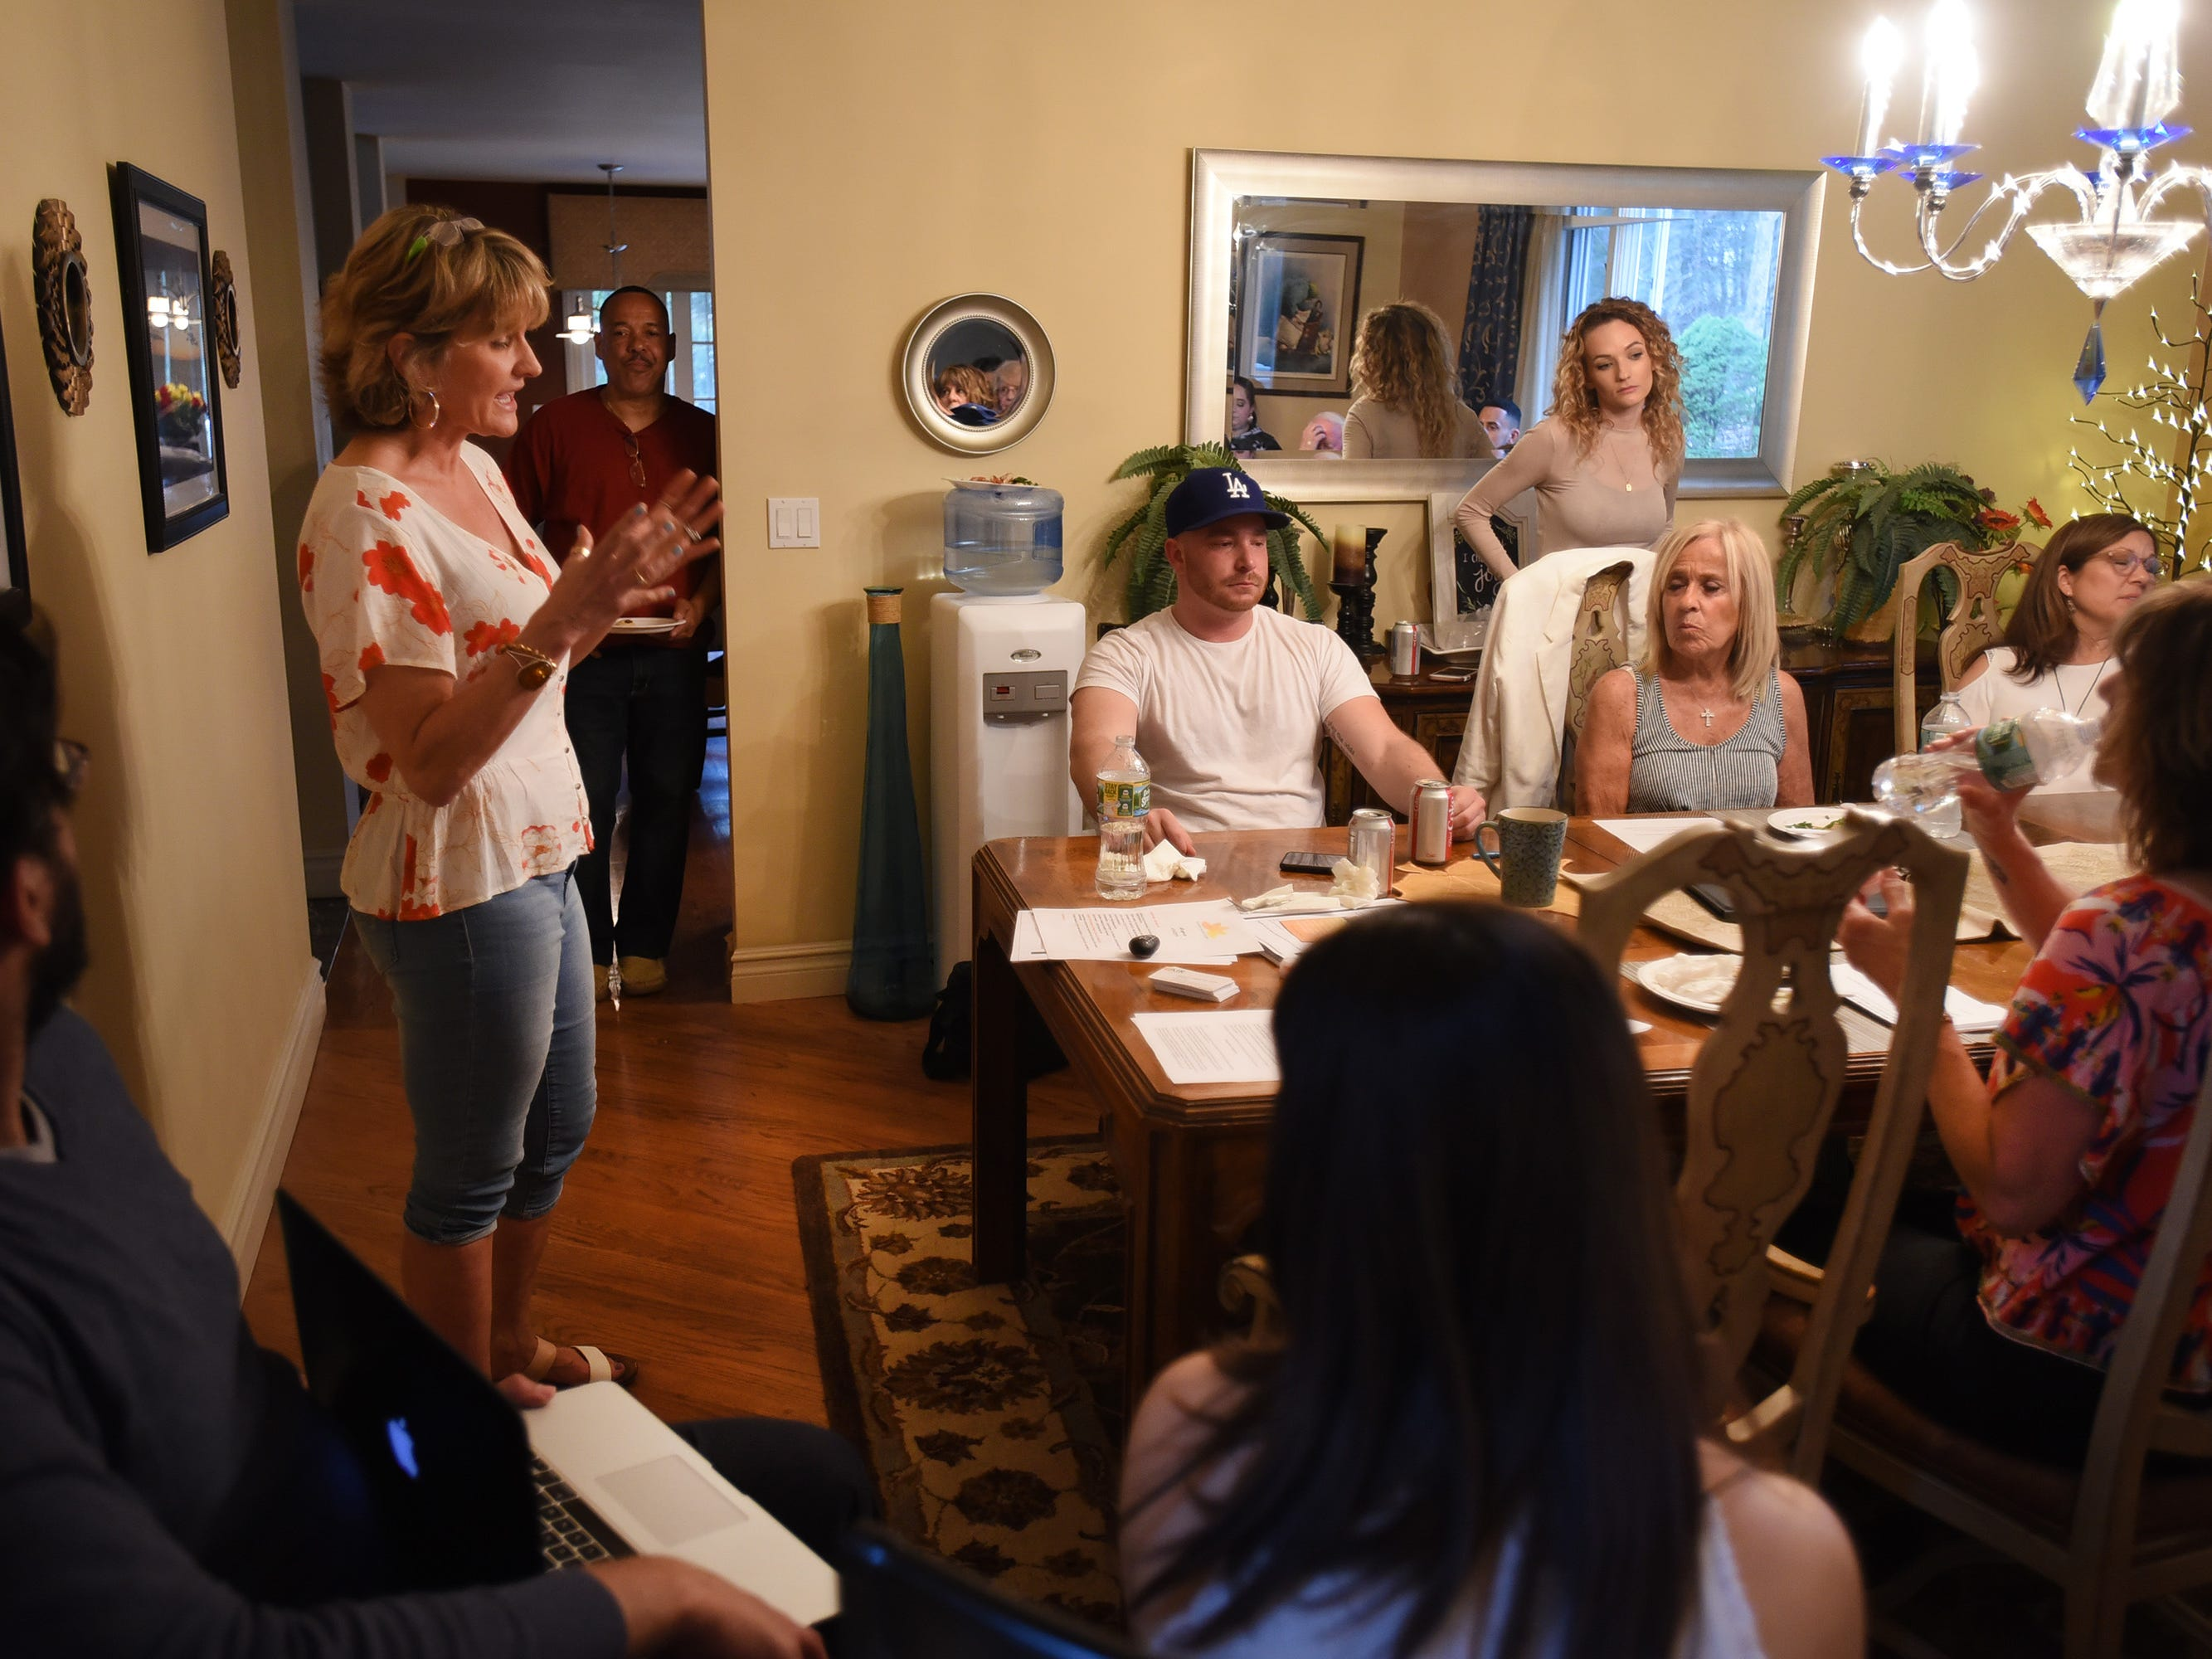 Nancy Labov, the Founder and Director of AIR(Alumni in Recovery), speaks to its members, family members of those who died from addiction,and volunteers, during their annual community meeting in Old Tappan on 04/14/19.